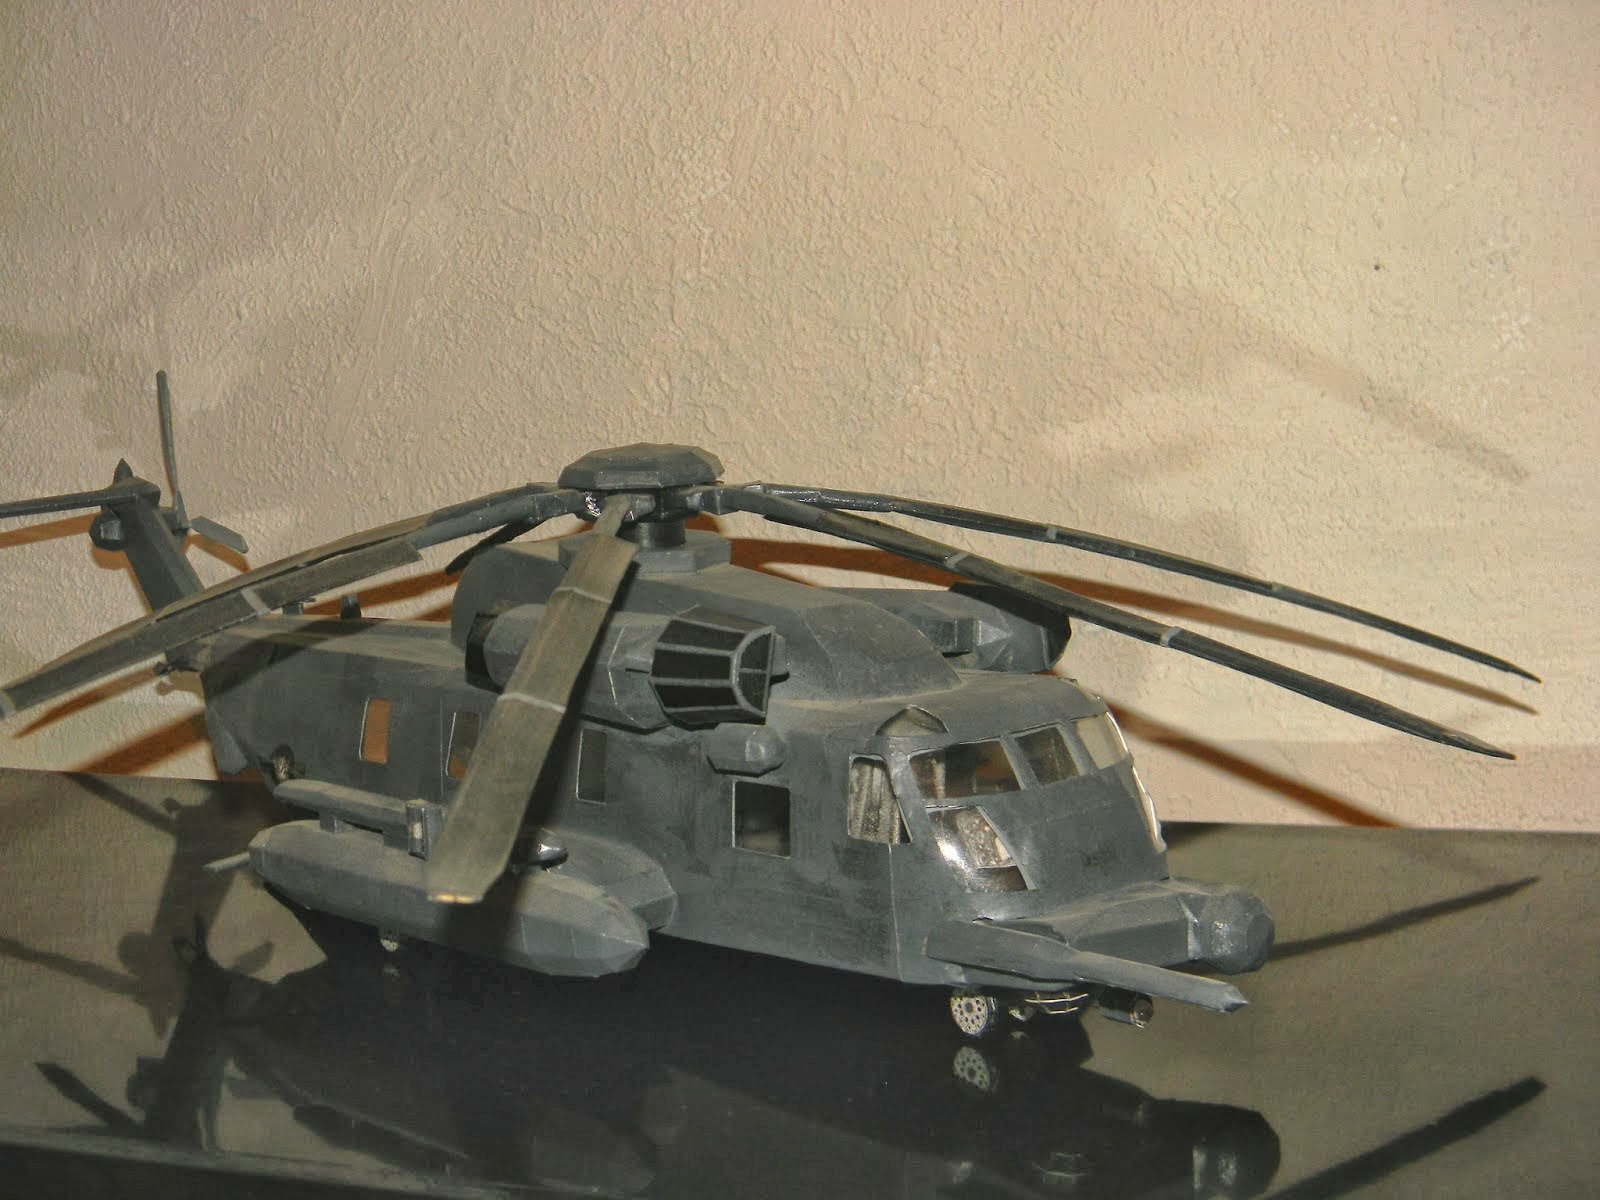 Sikorsky MH53 Pave Low Helicopter Papercraft